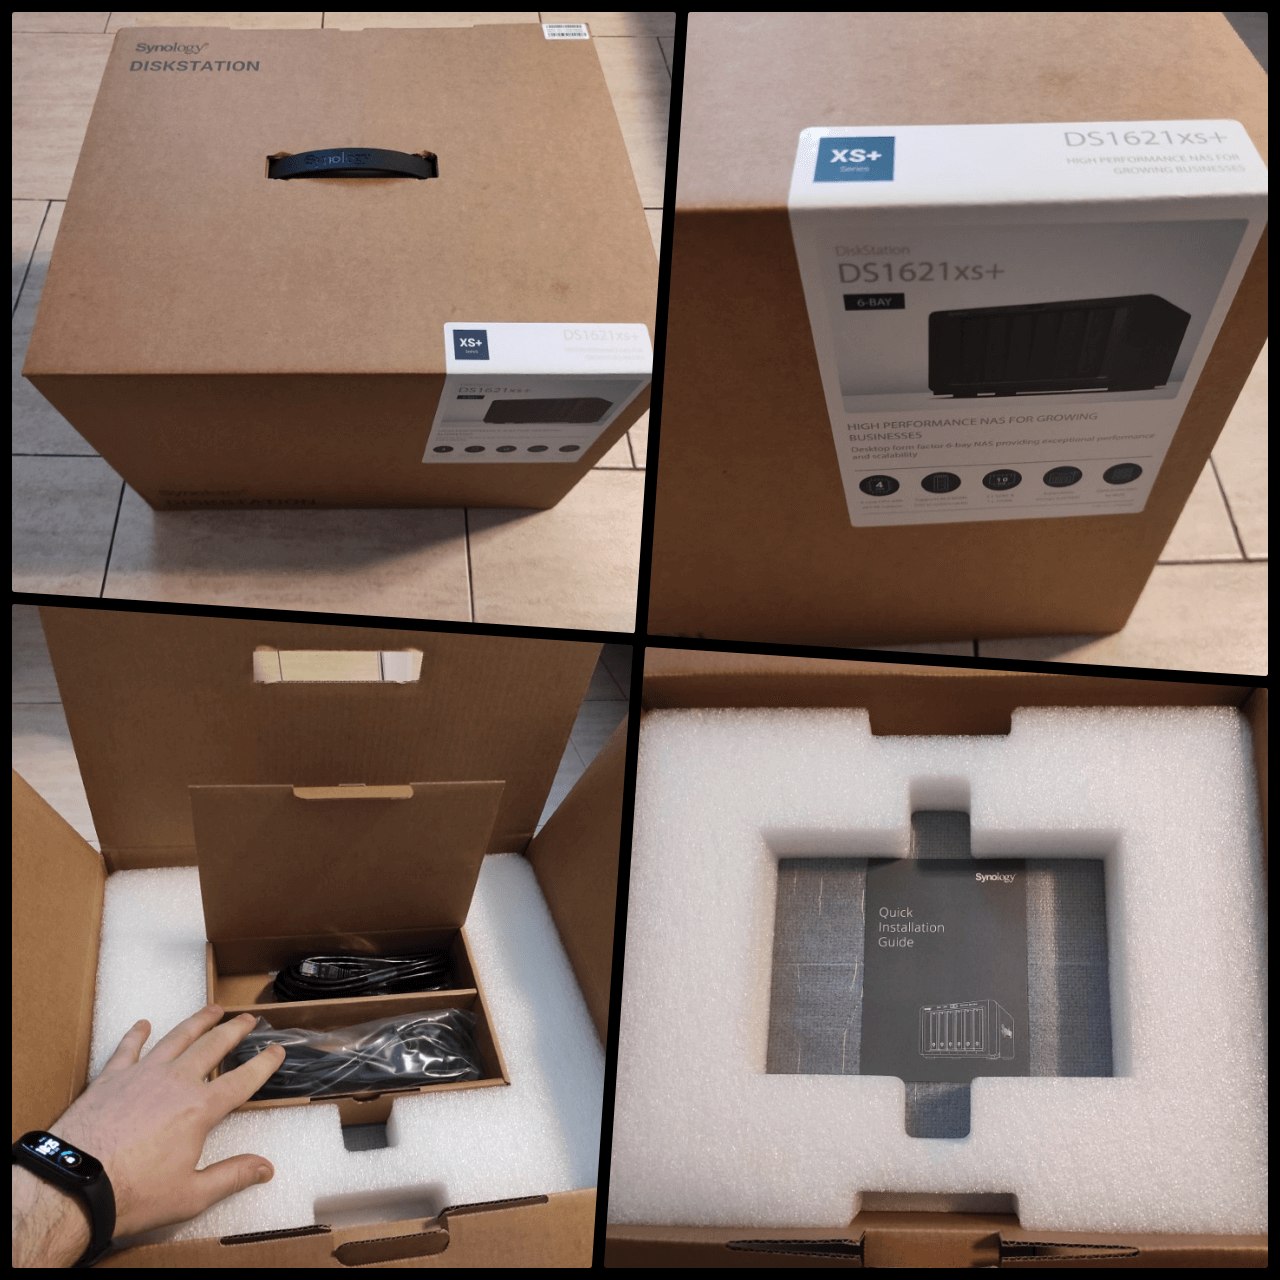 1 Synology NAS DS1621xs+ Review